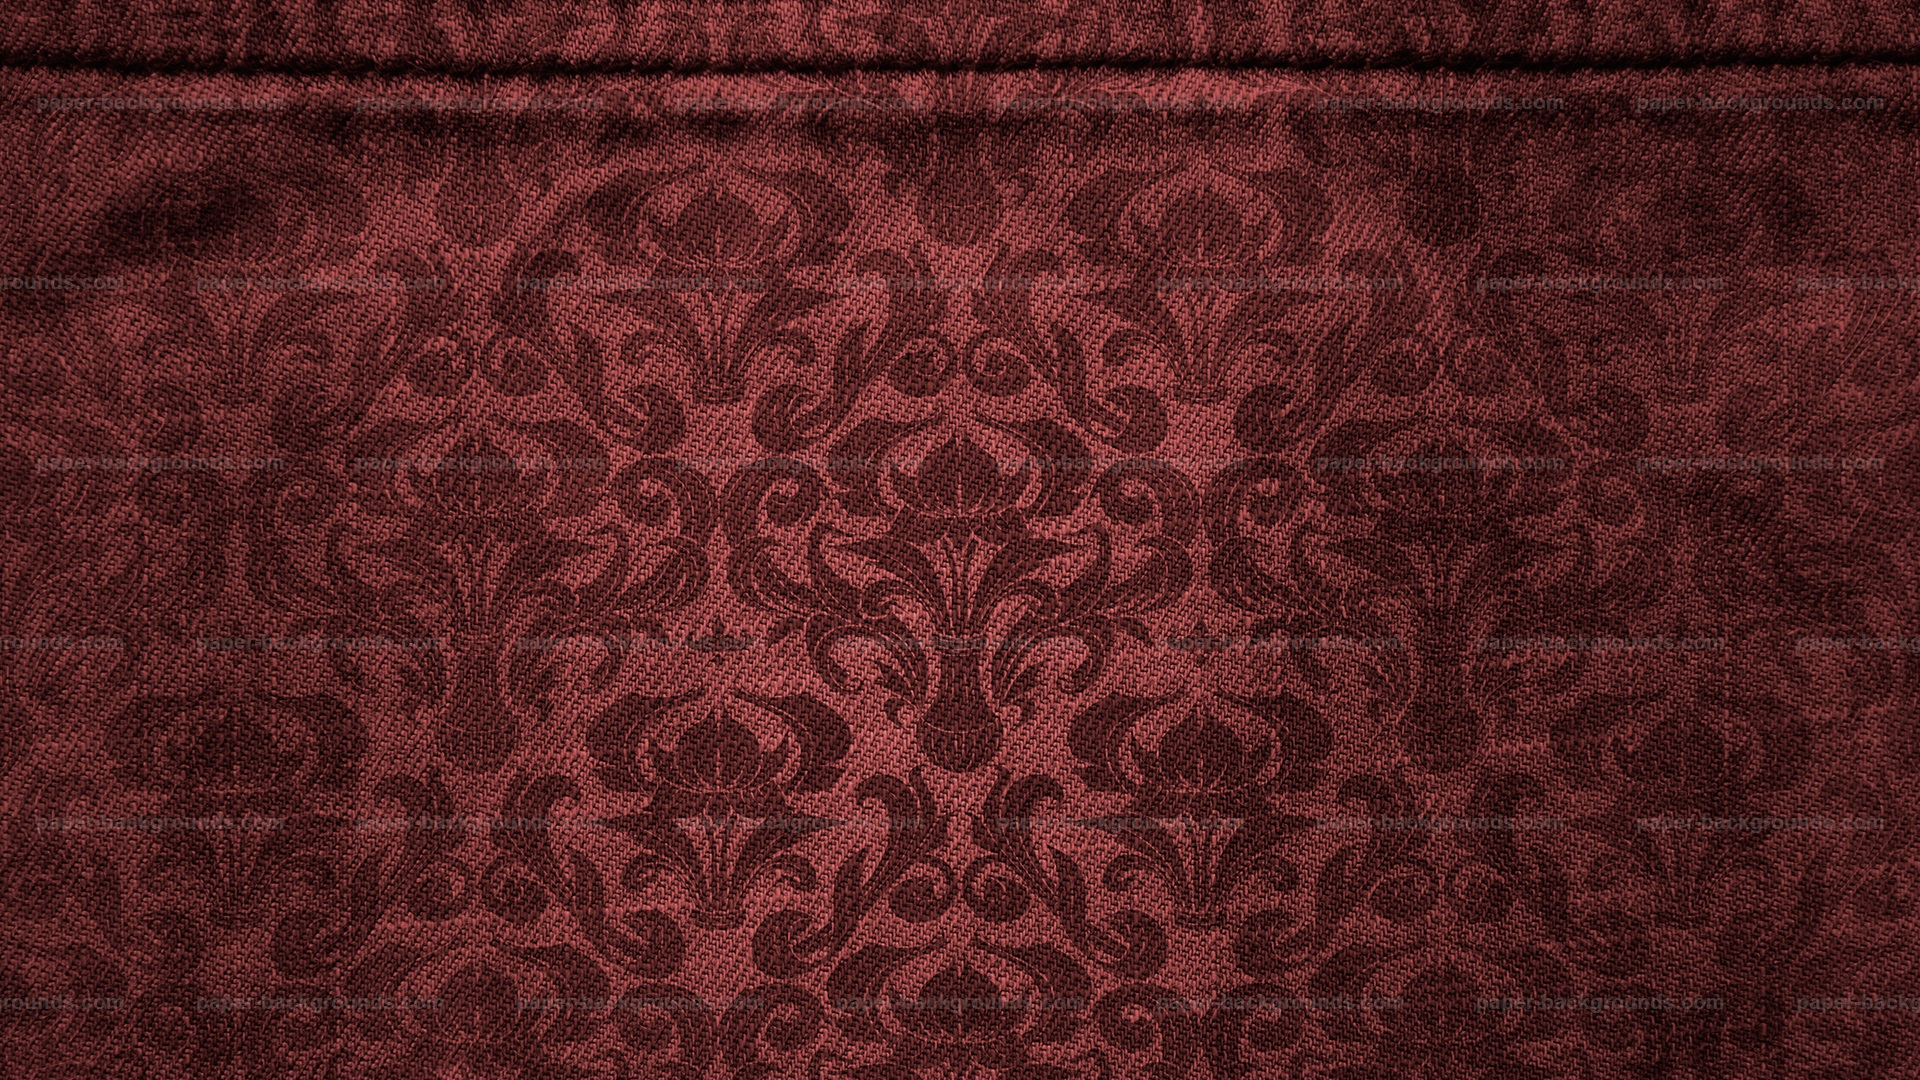 Brown Canvas with Damask Pattern Background HD